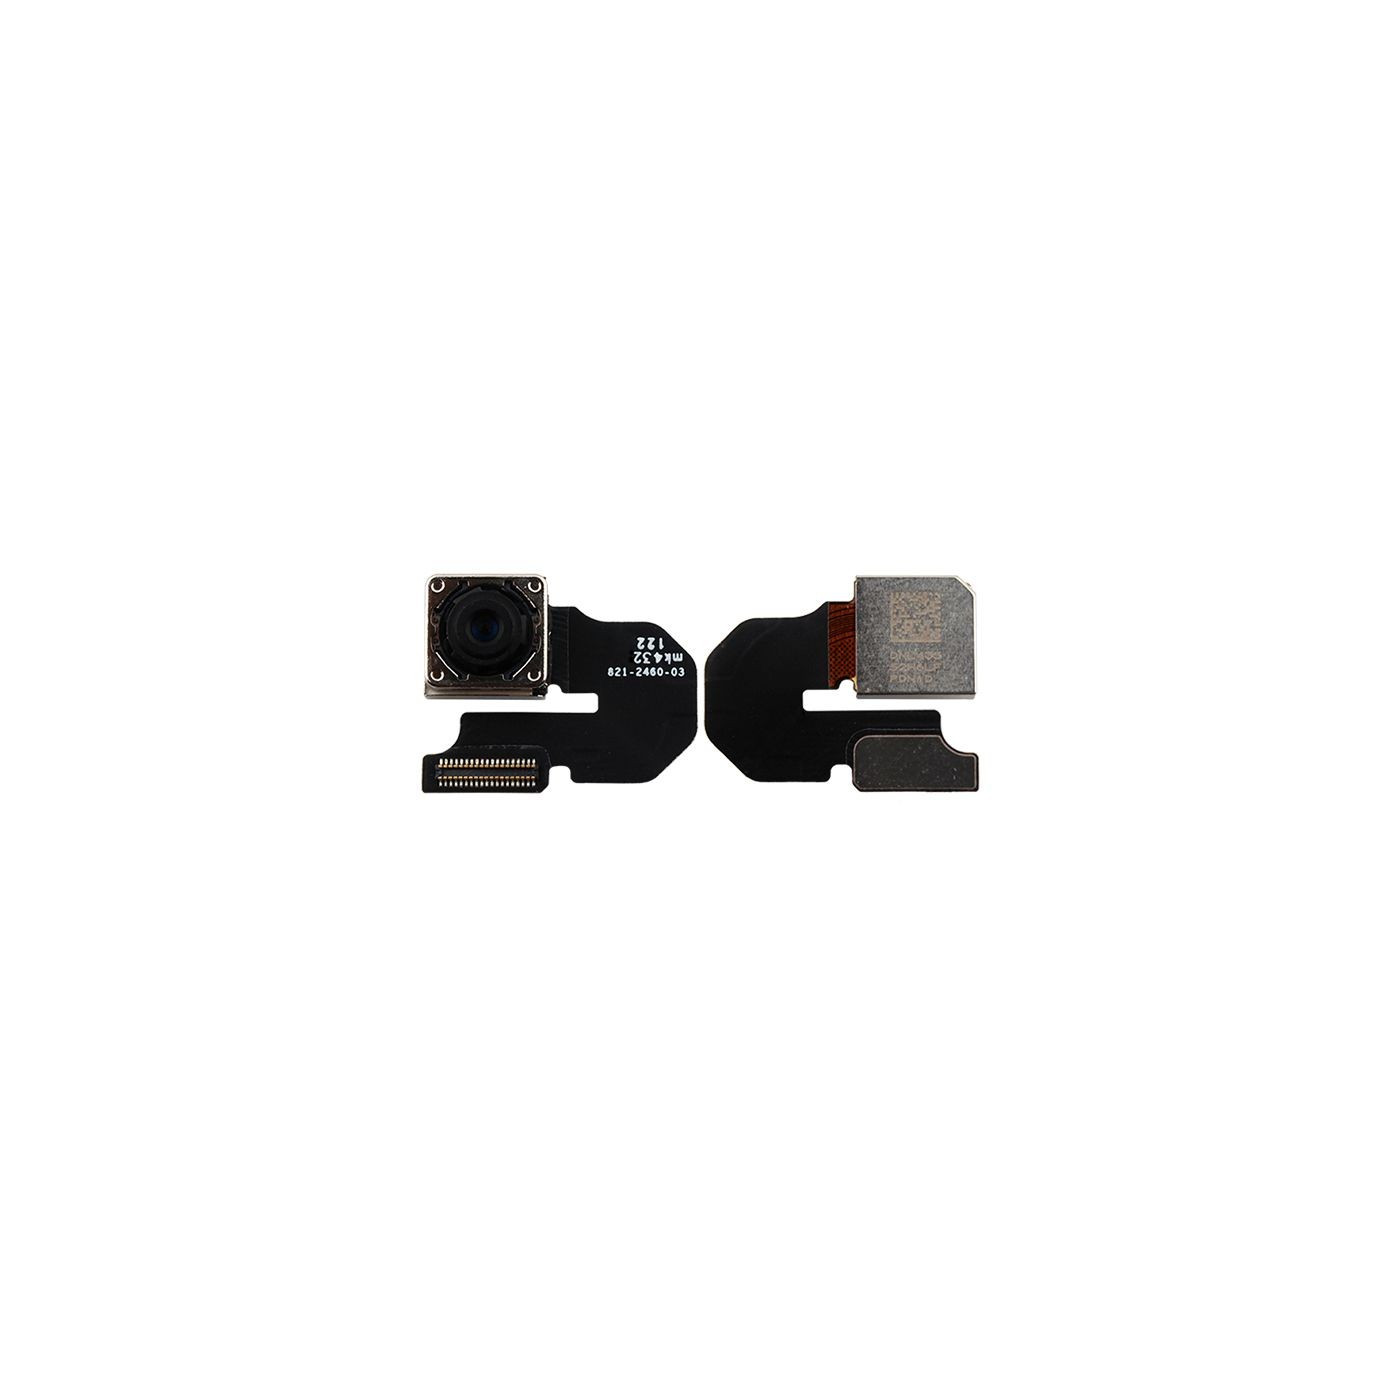 Rear camera for apple iphone 6 back behind the main parts